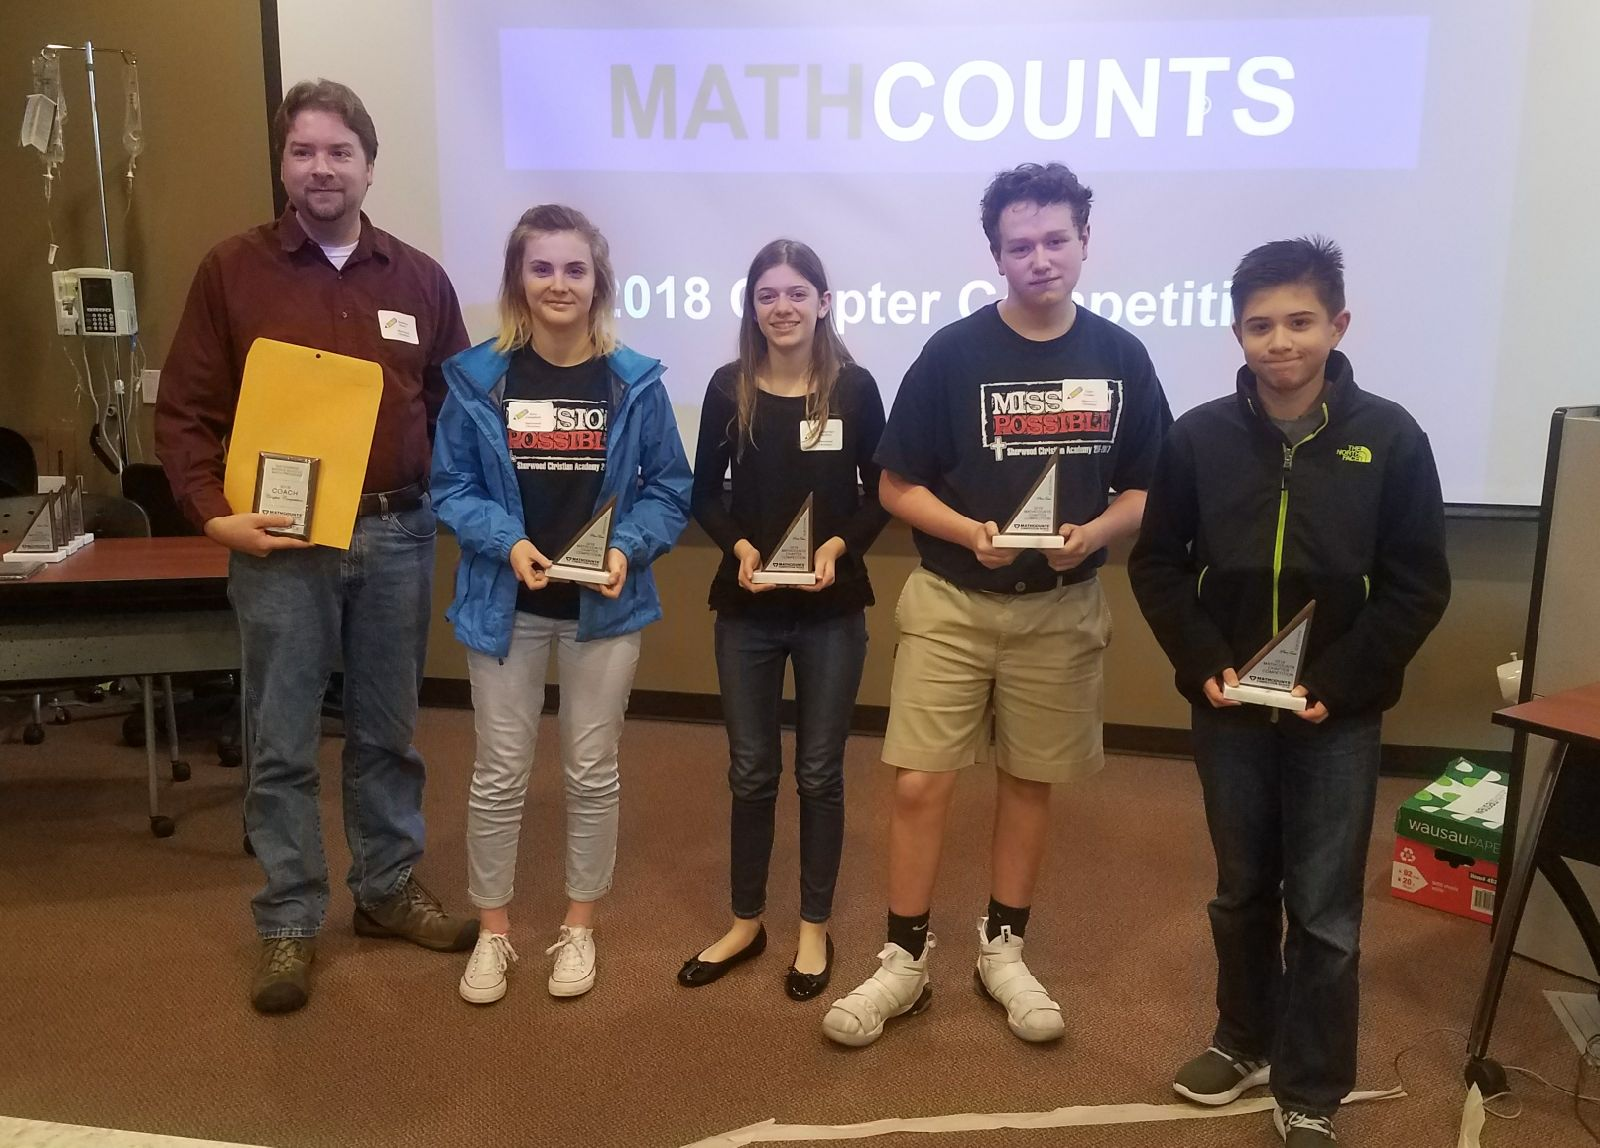 math counts 2018